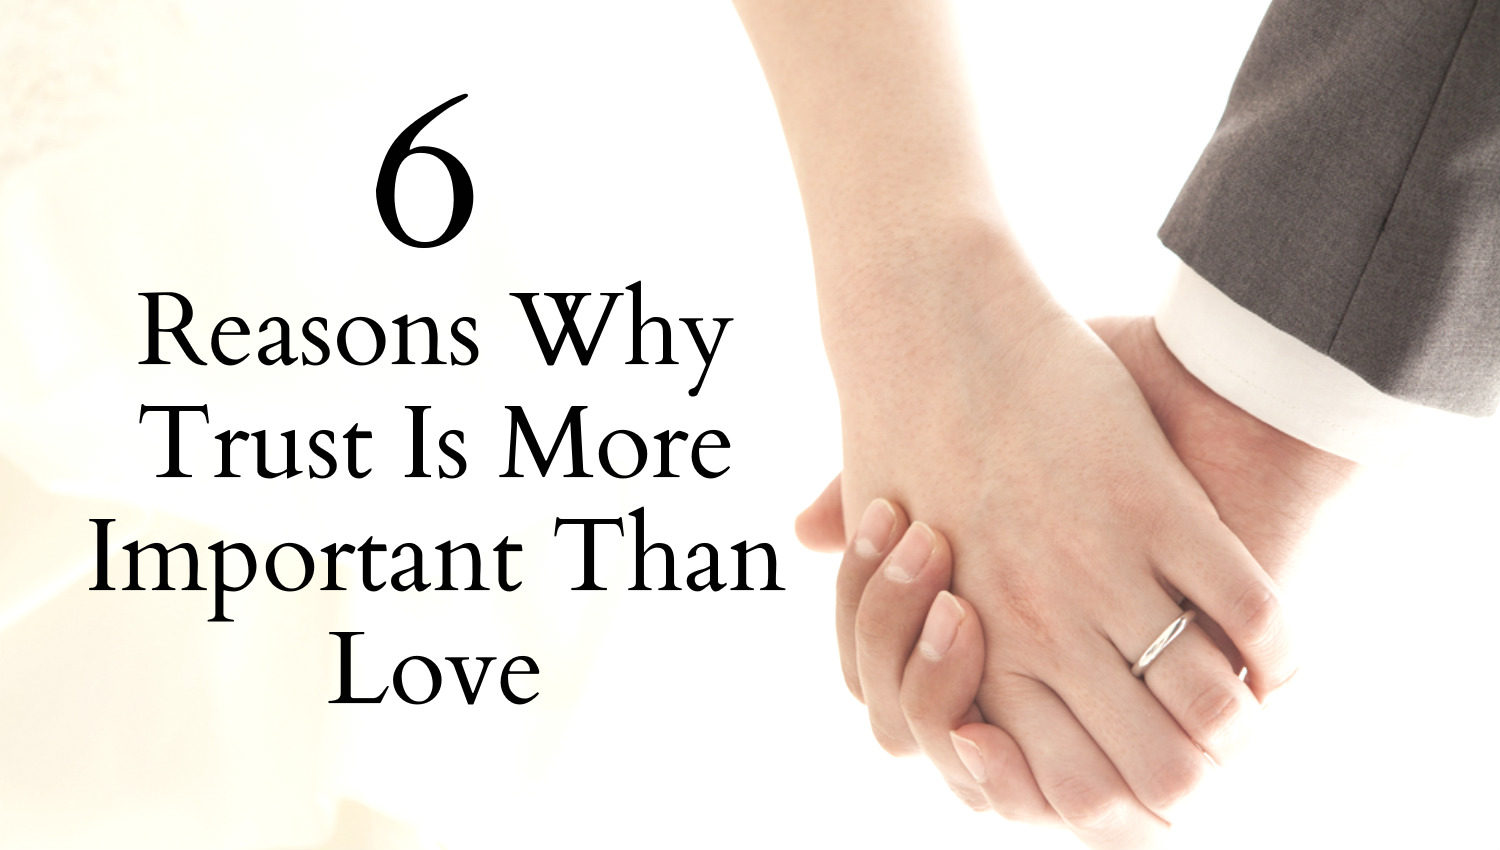 Awesome Quotes: 6 Reasons Why Trust Is More Important Than